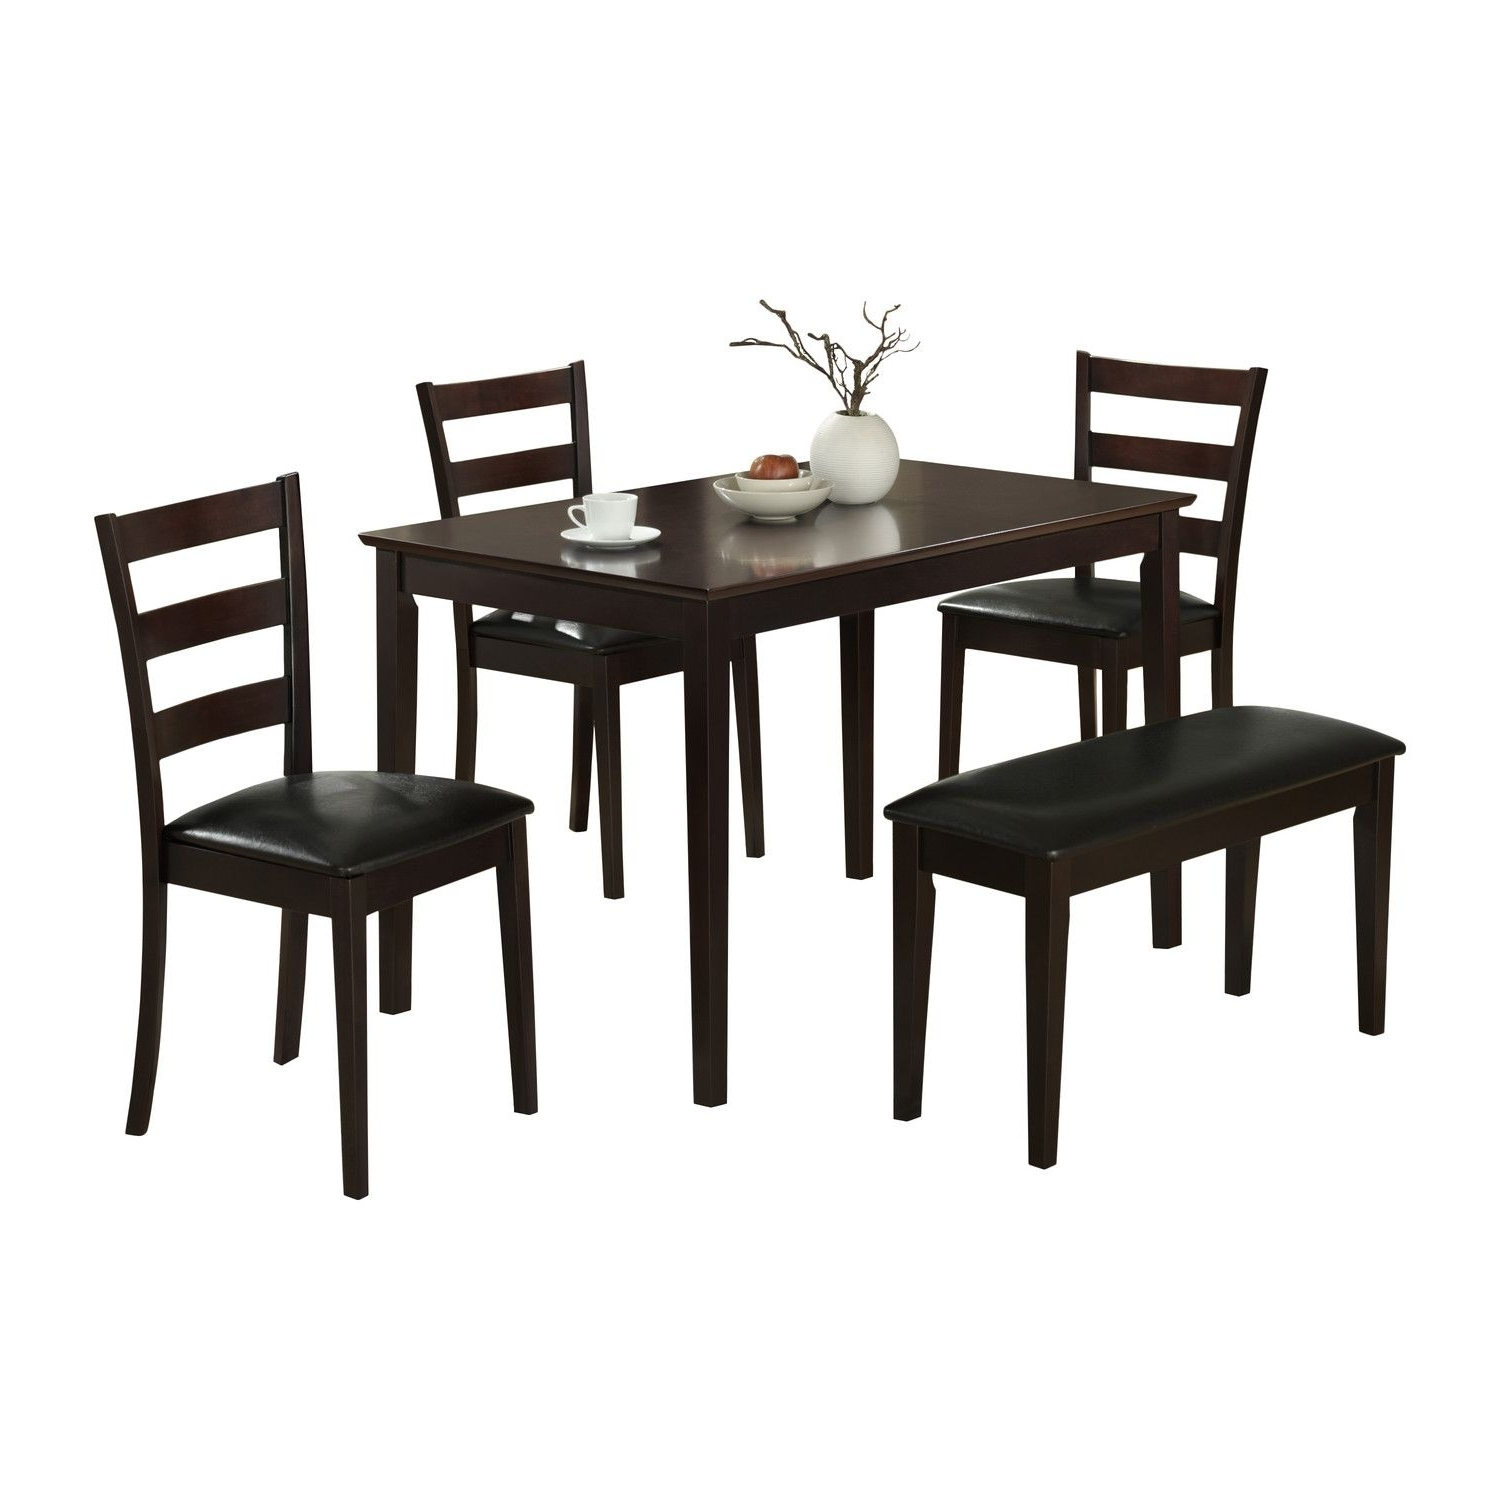 Kirsten 5 Piece Dining Sets For Most Current 5 Piece Dining Set (View 11 of 25)